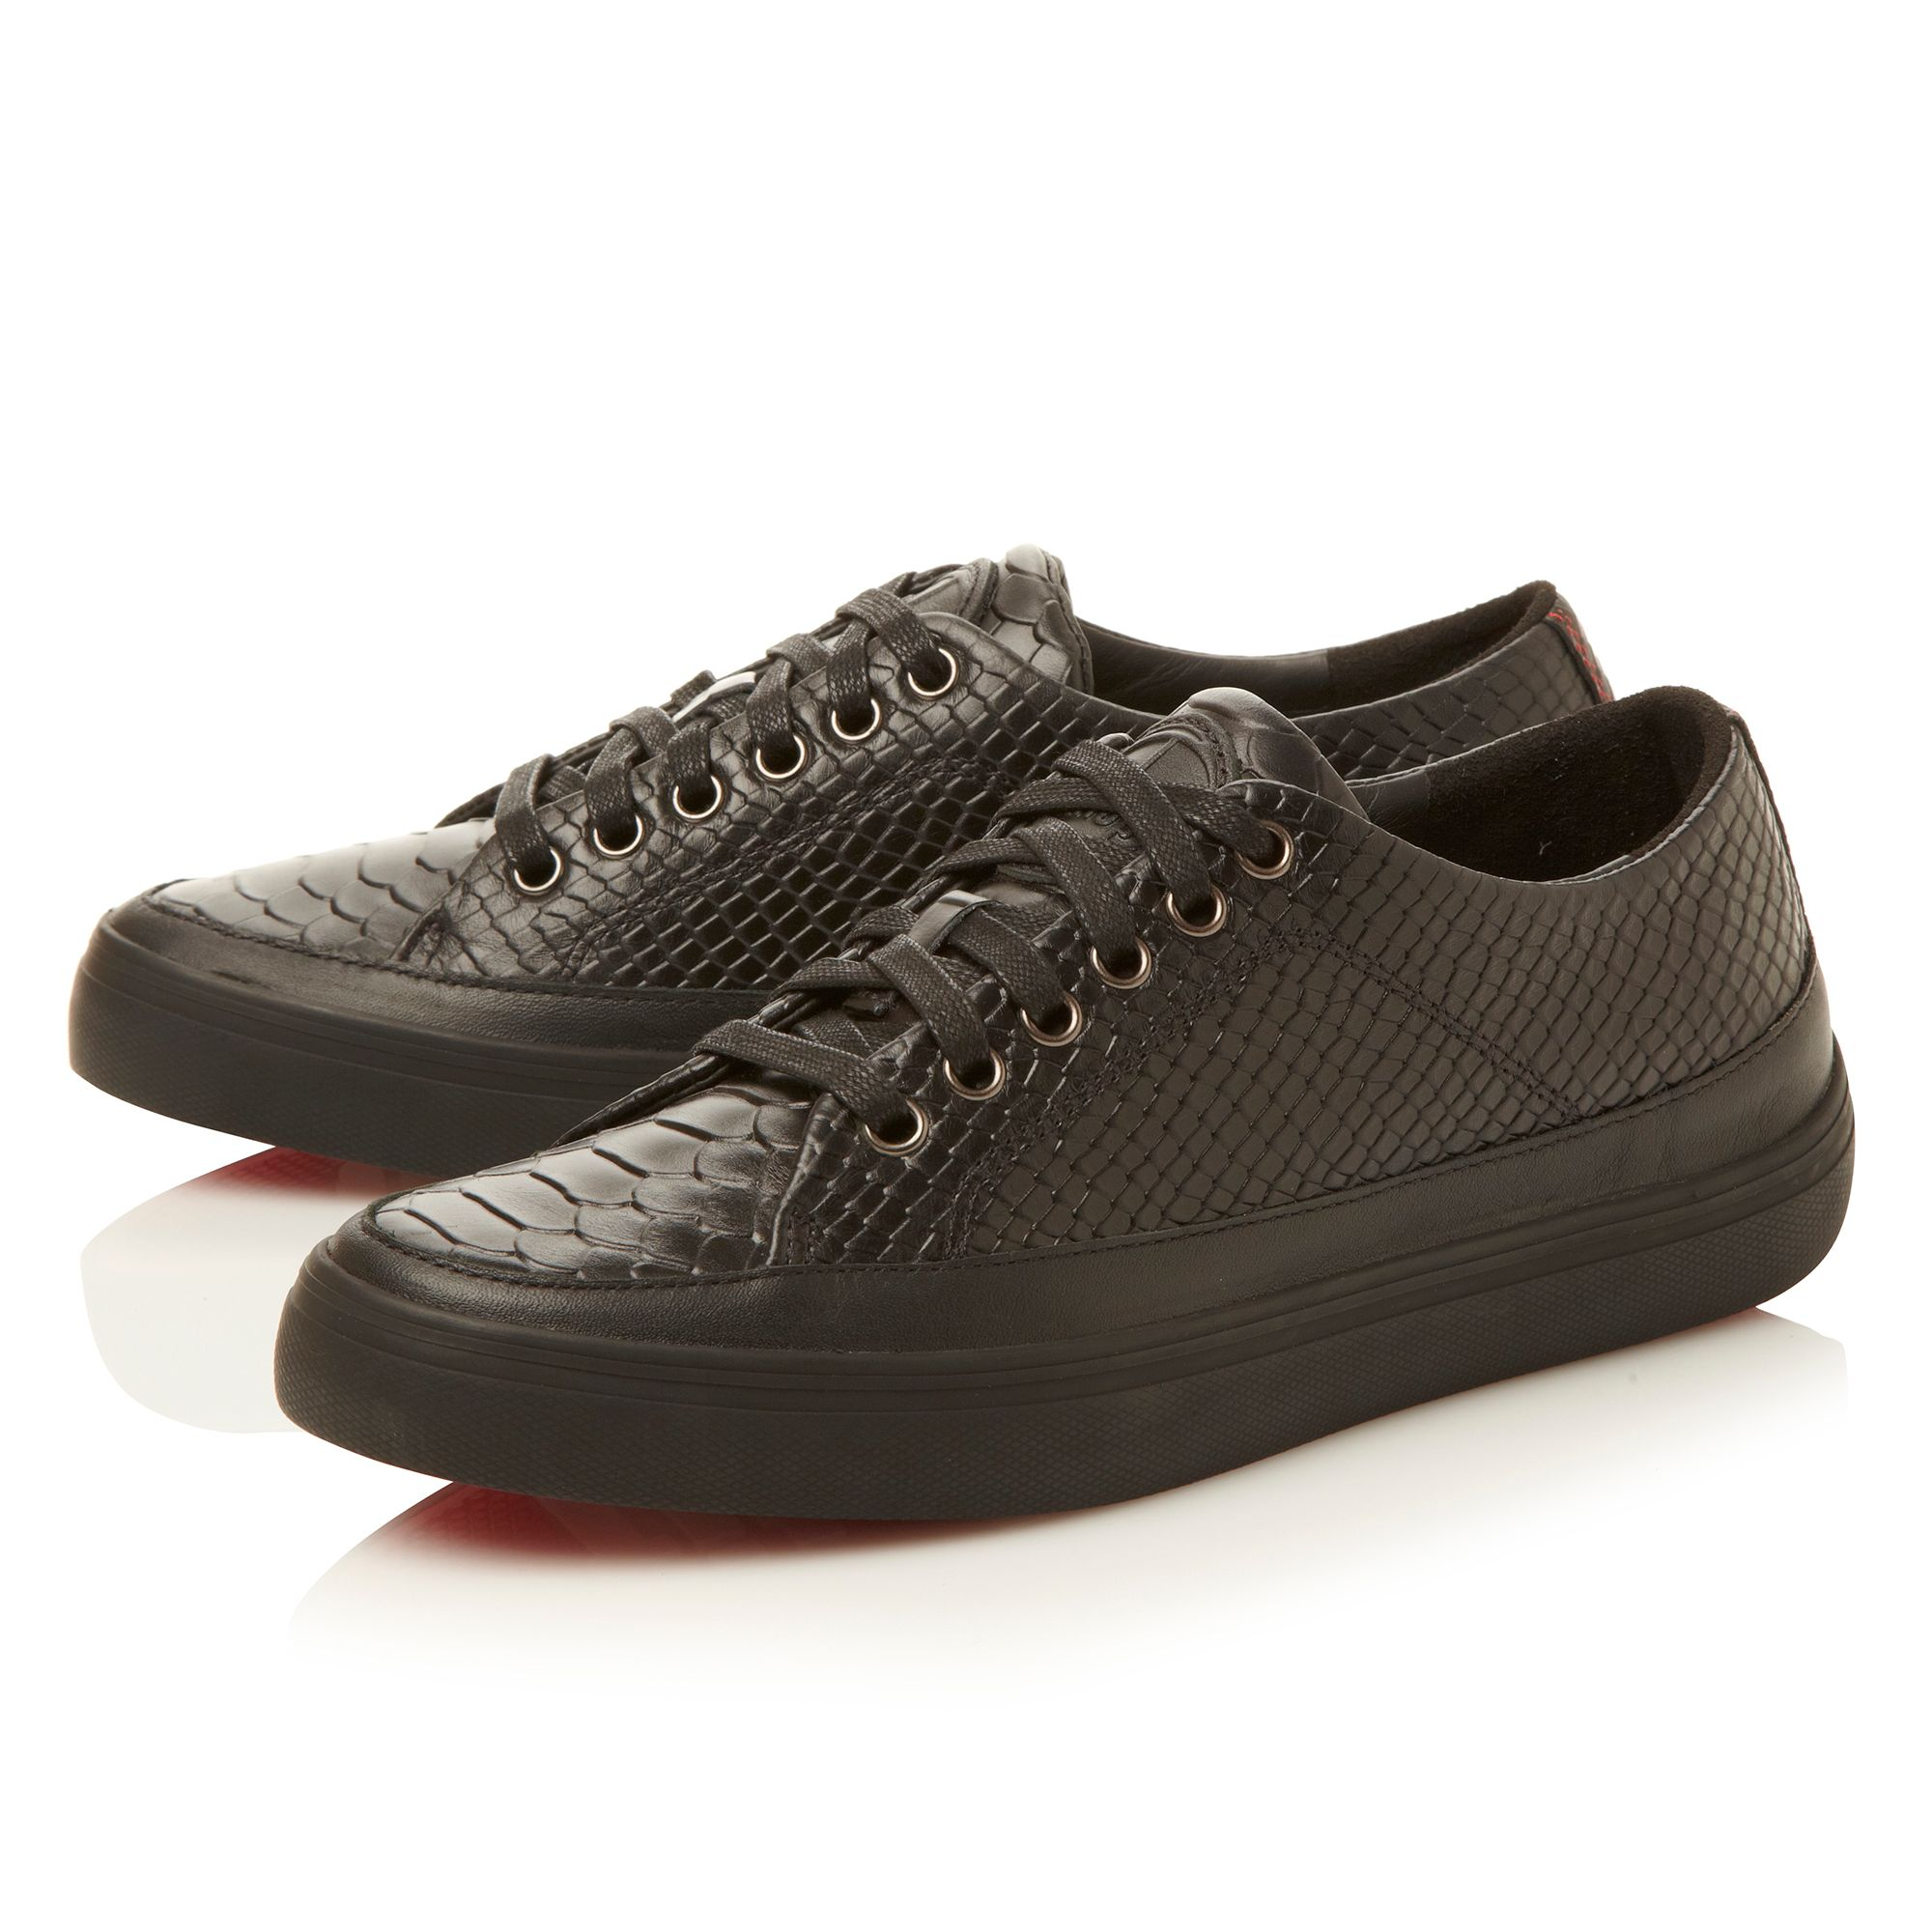 Super T Snake embossed snake trainer shoes